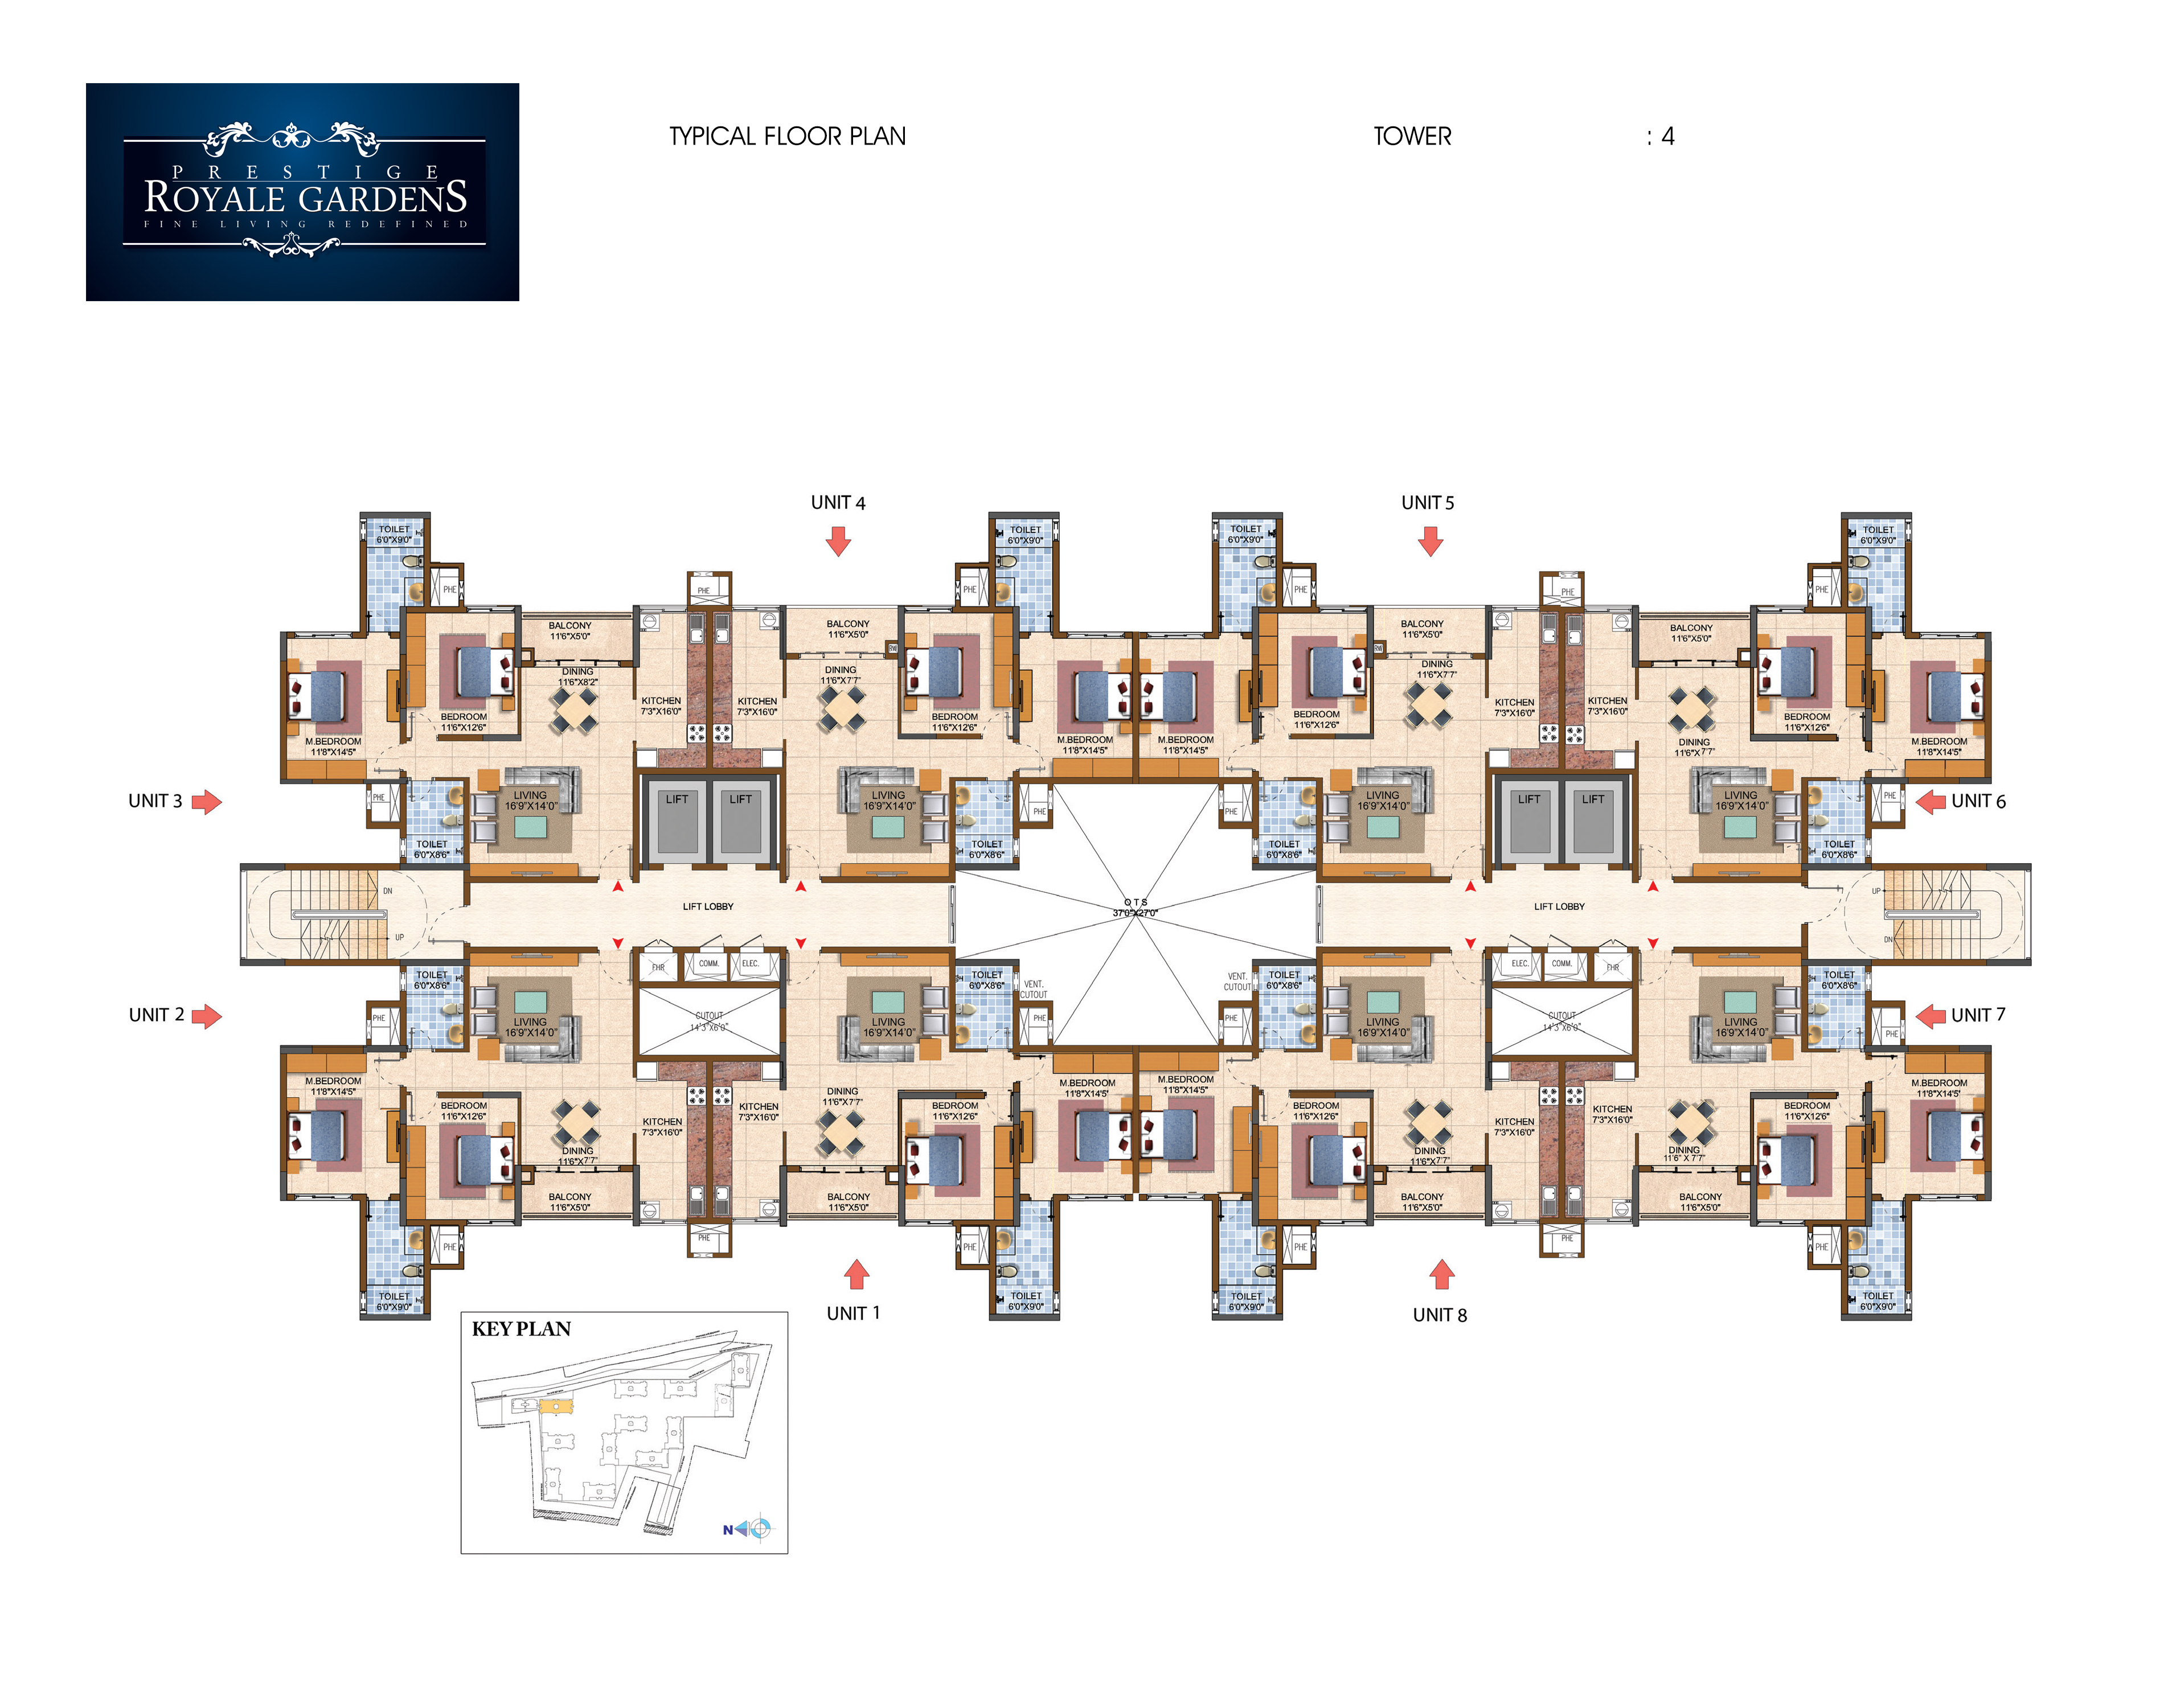 Prestige Royale Gardens - Typical Floor Plan, Tower 4